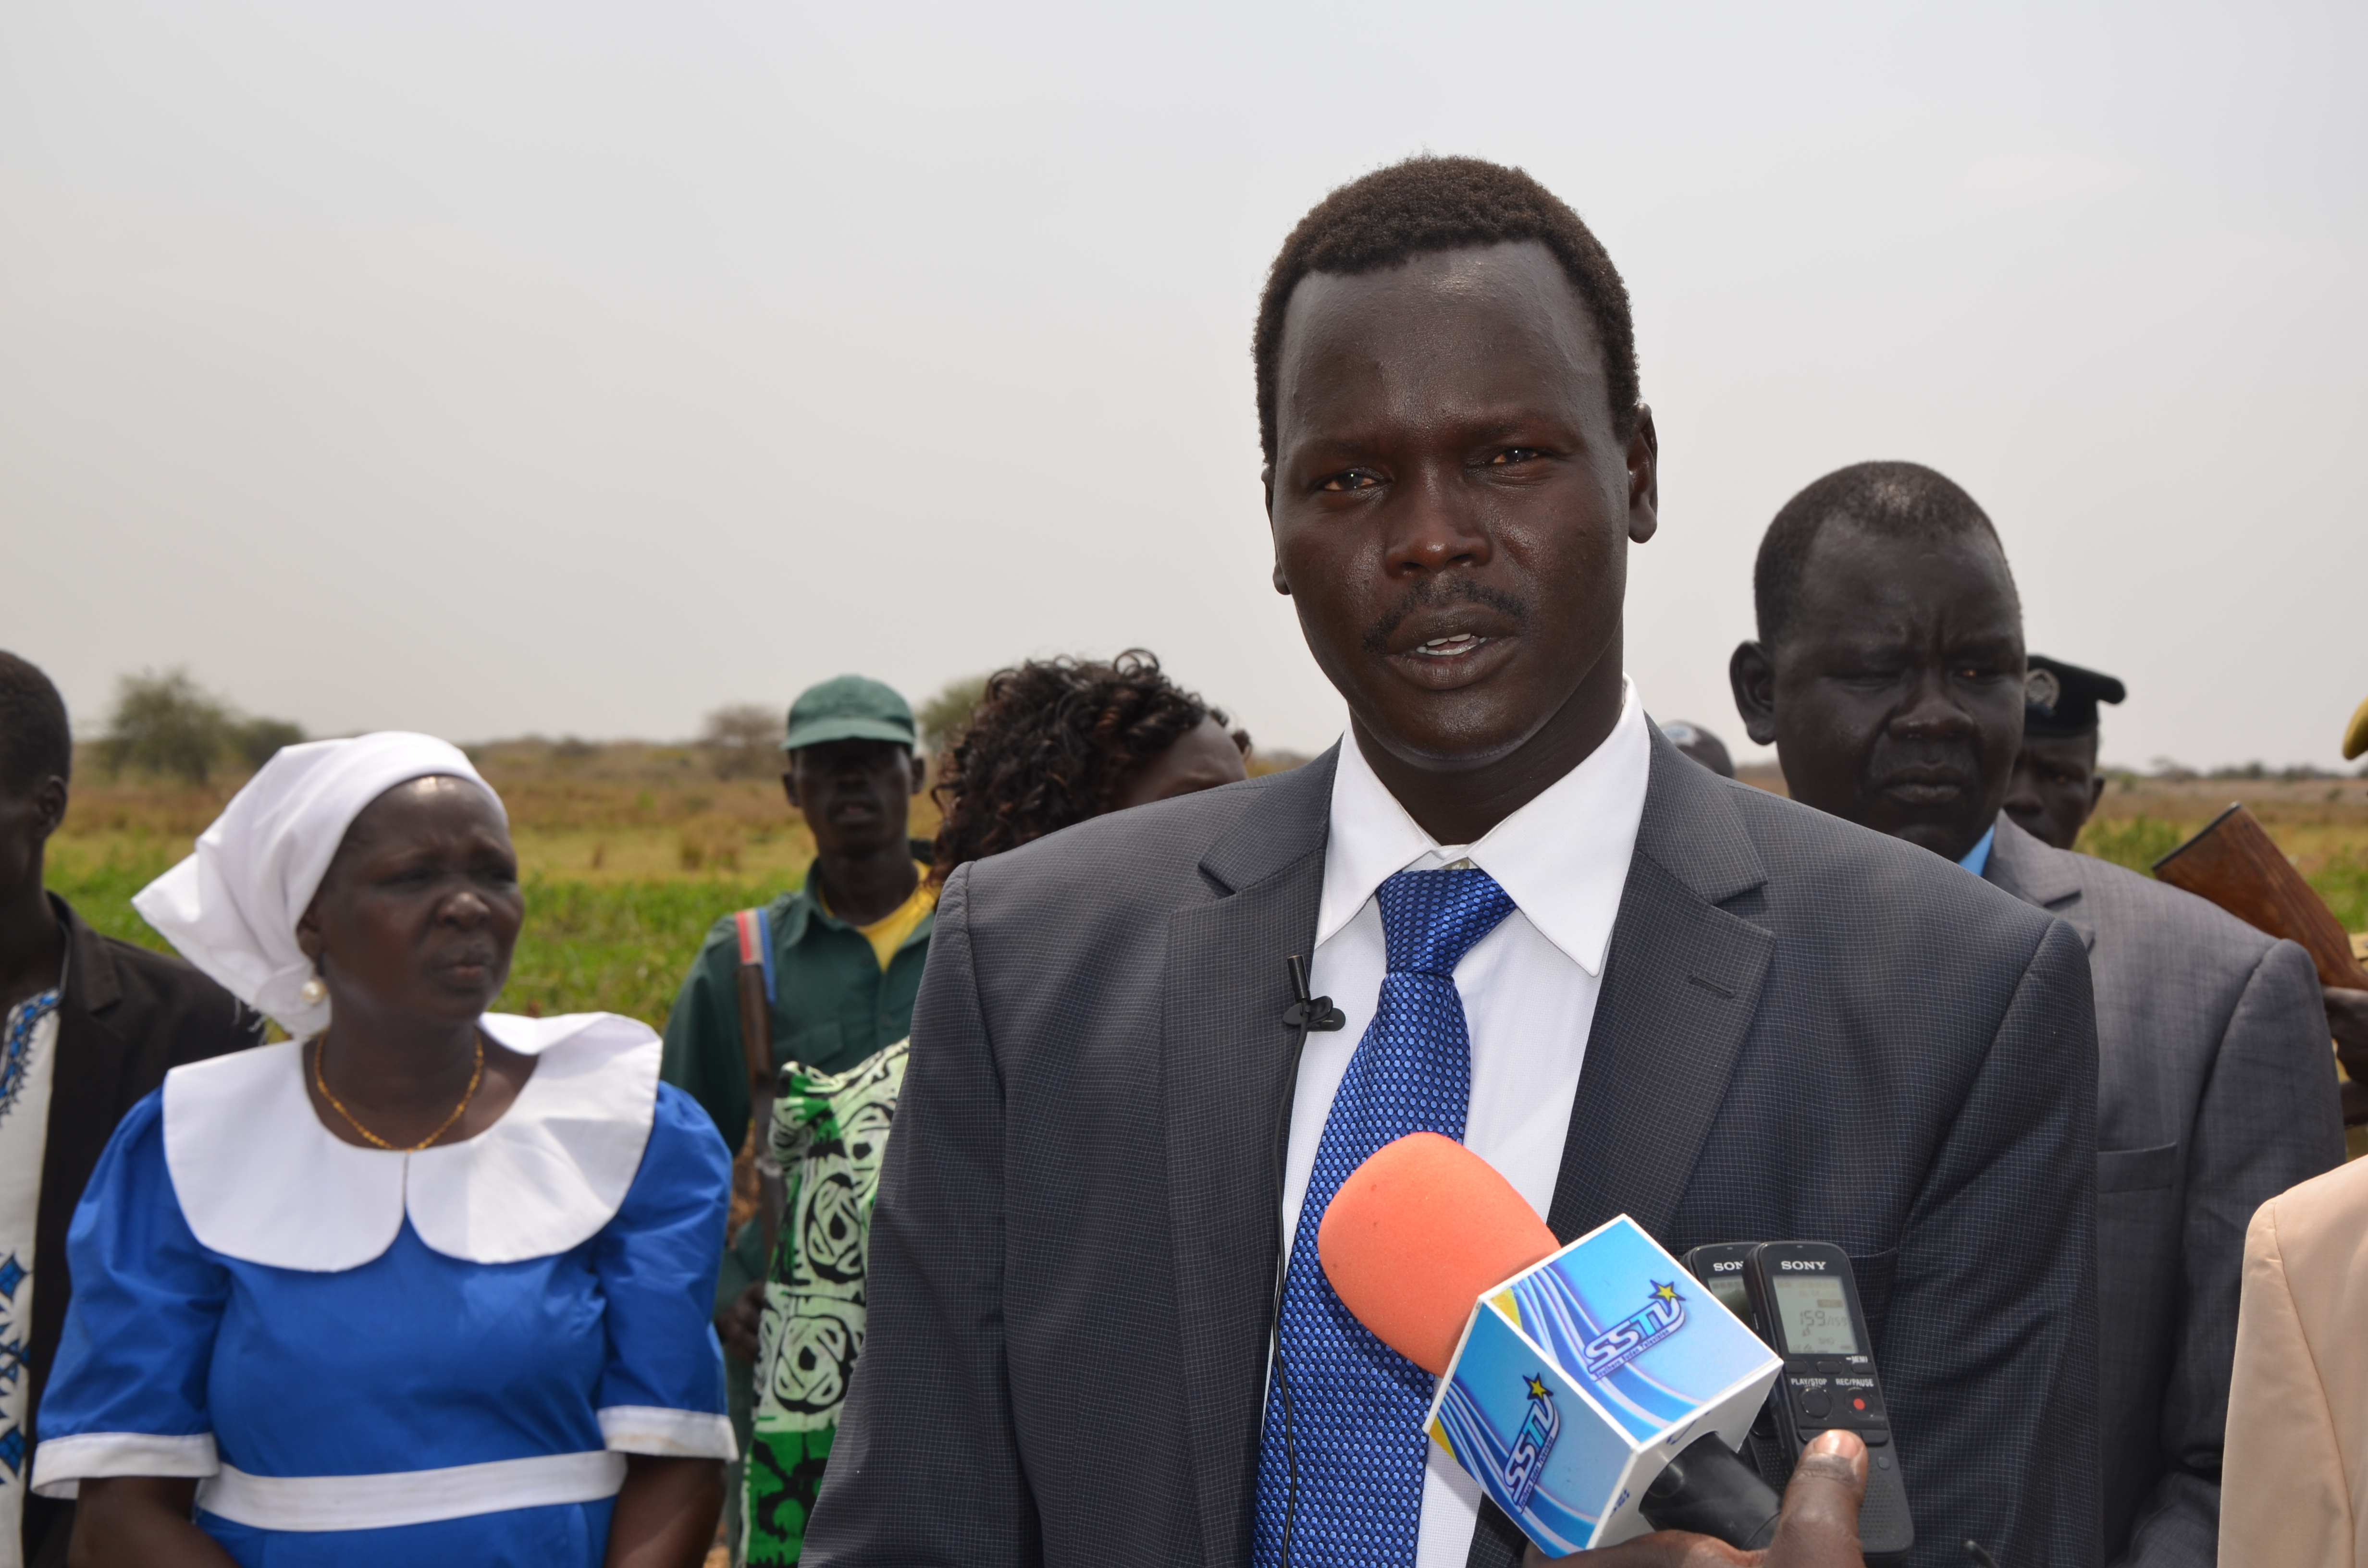 jacob-akech-dengdit-making-media-statement-during-peace-innitiative-in-duk-in-2014